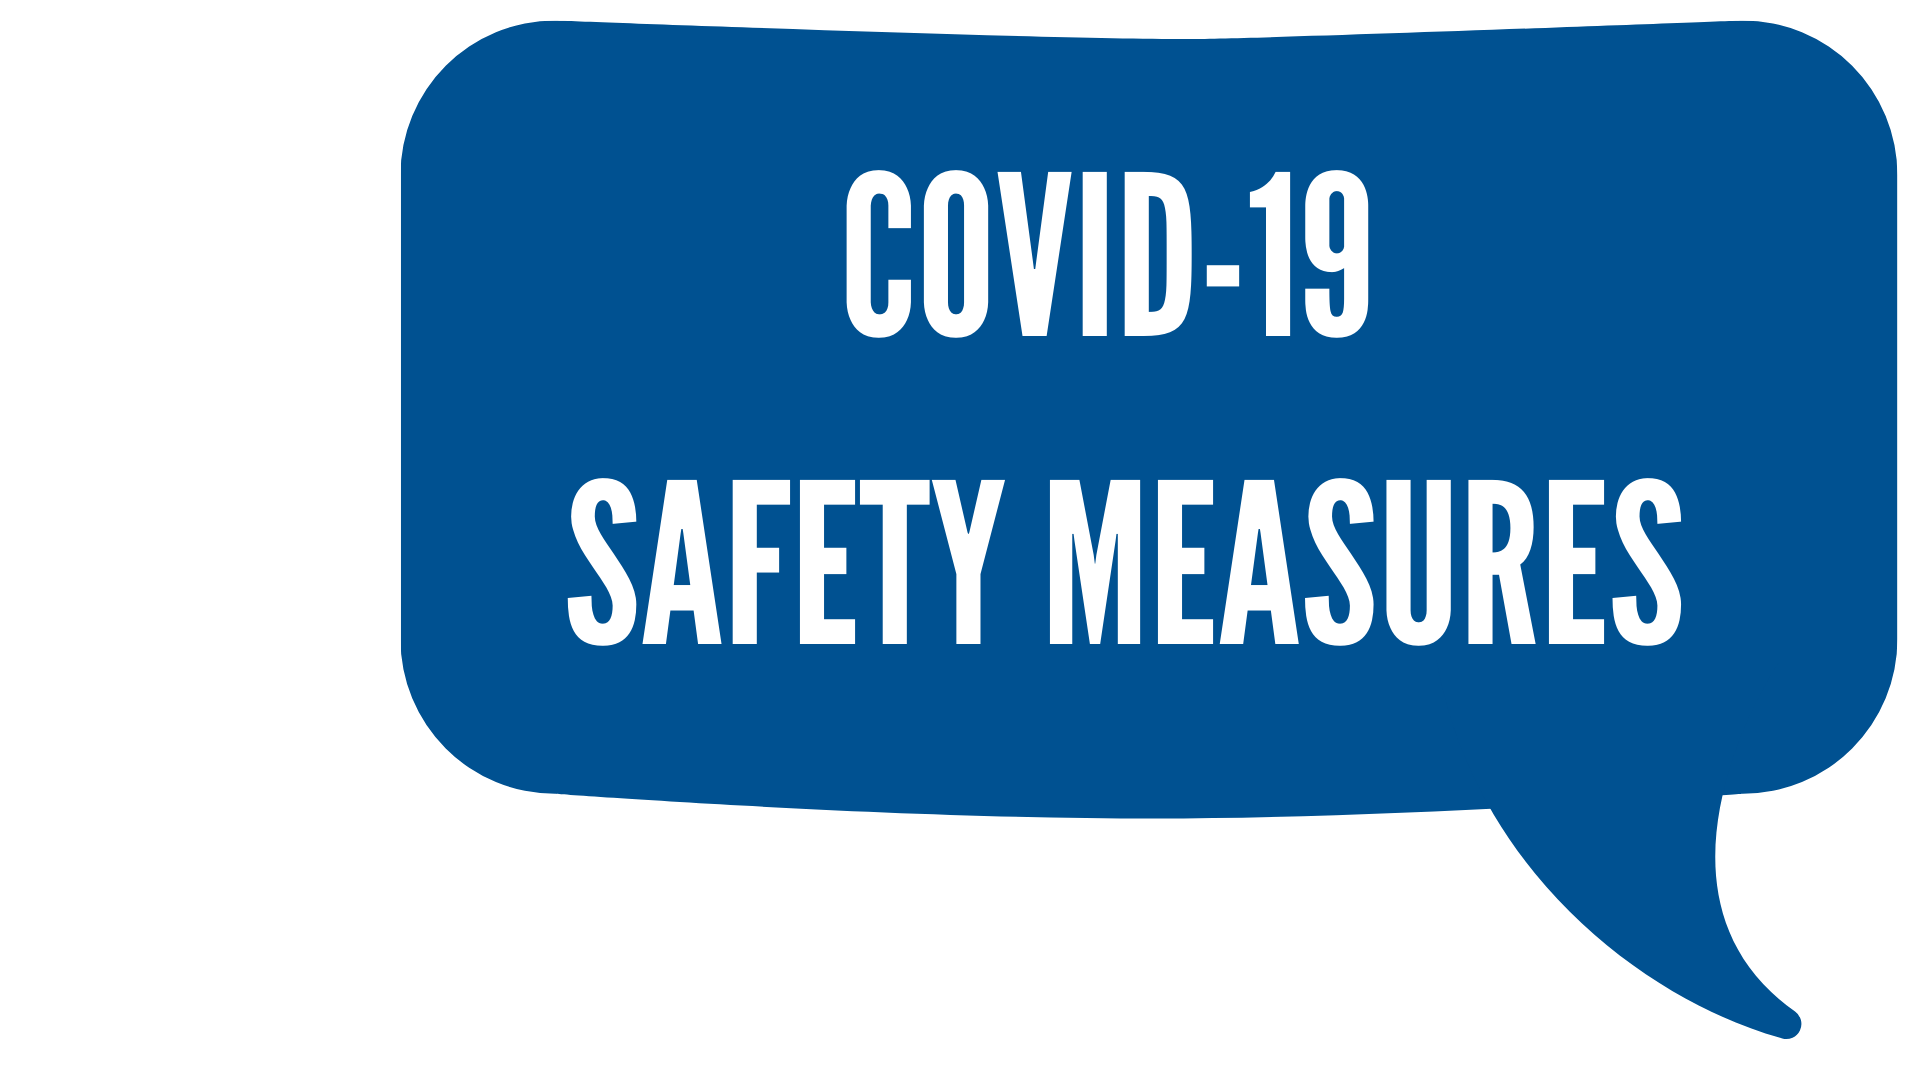 COVID-10 SAFETY